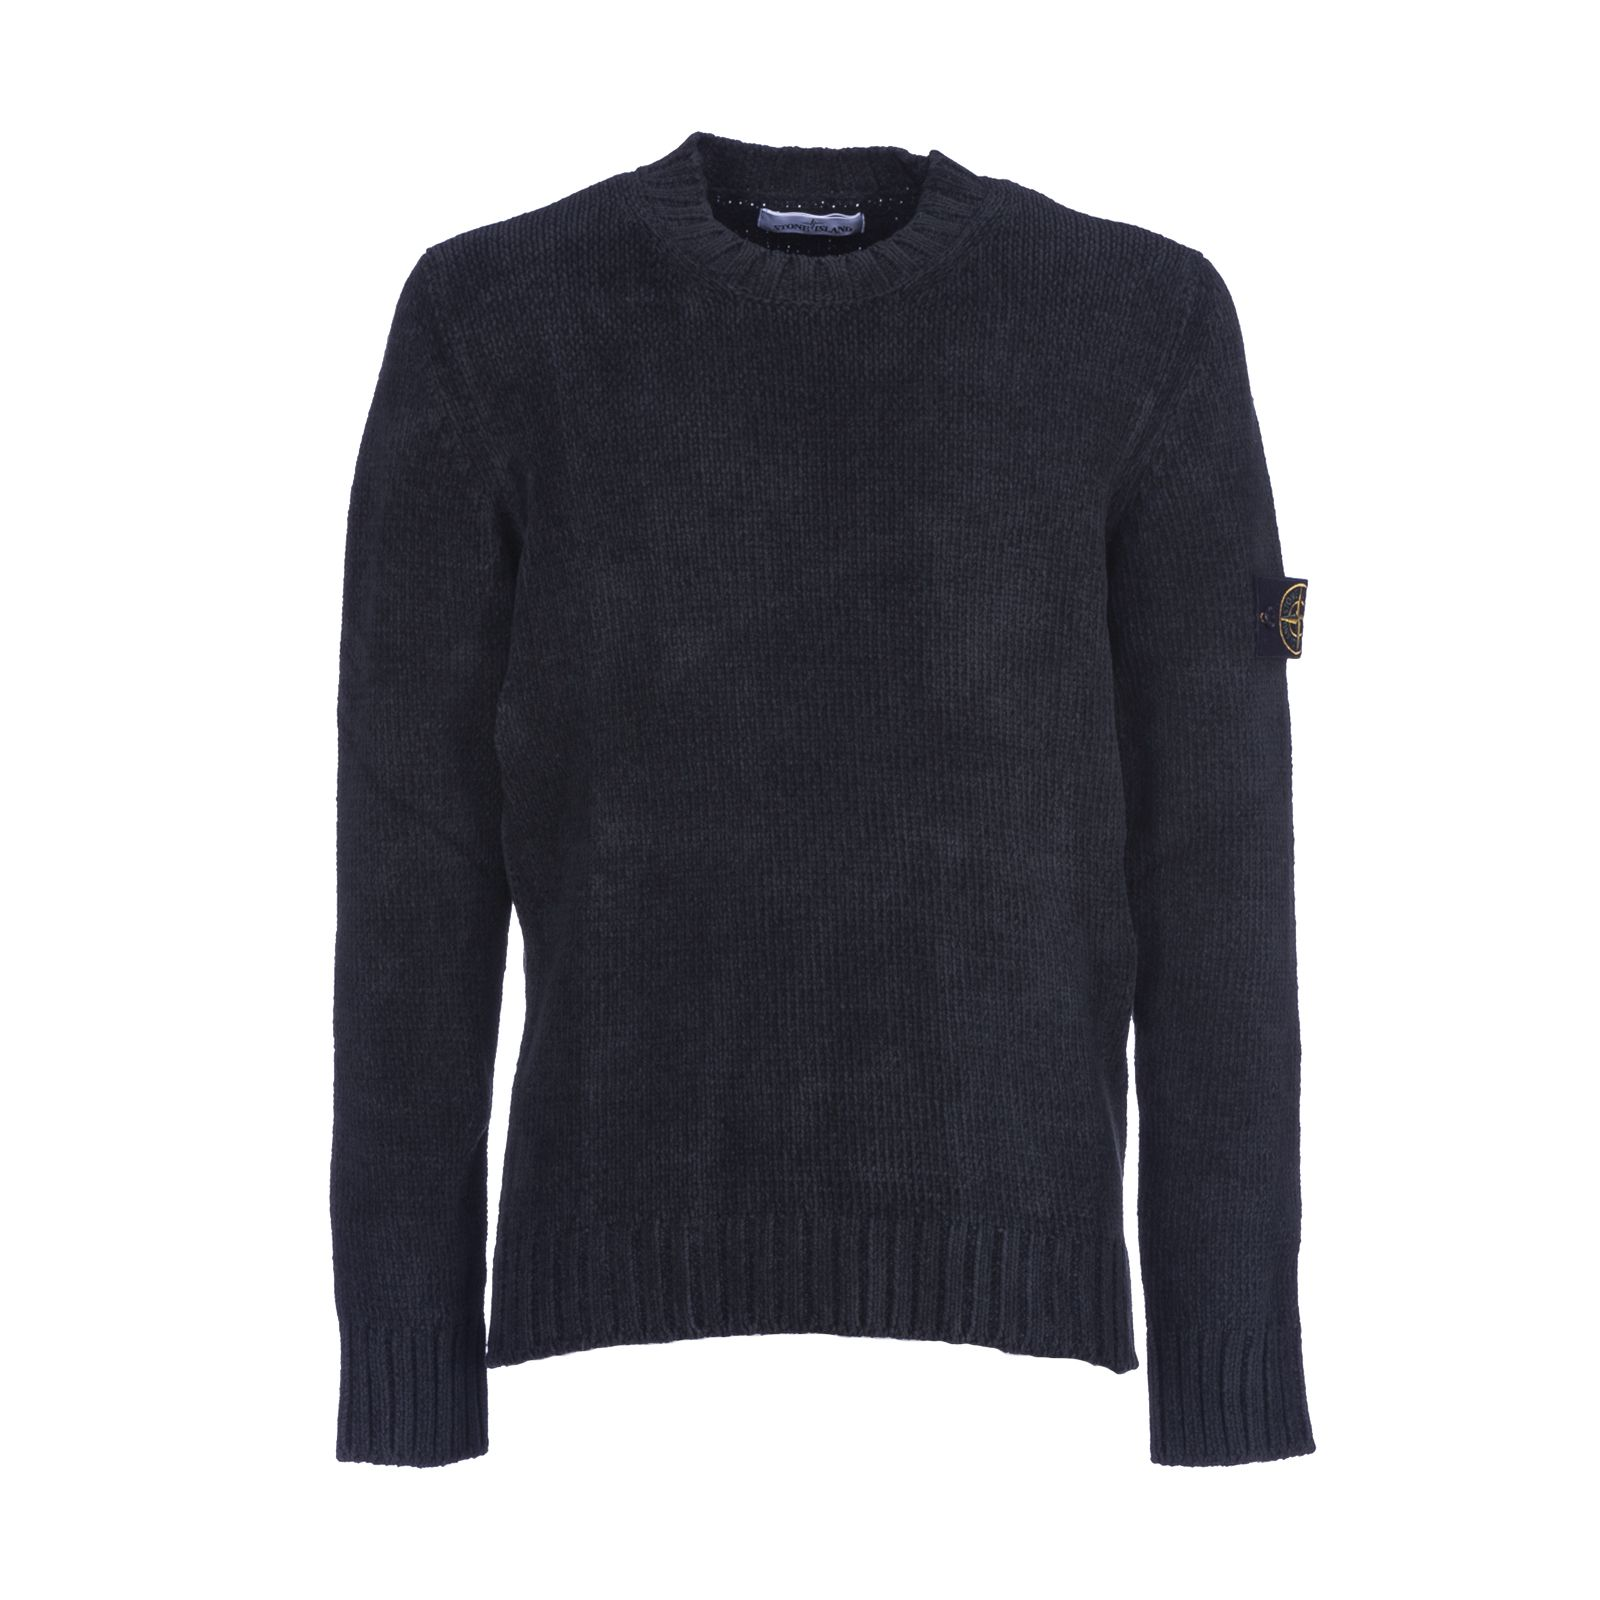 Stone Island Knitted Sweater